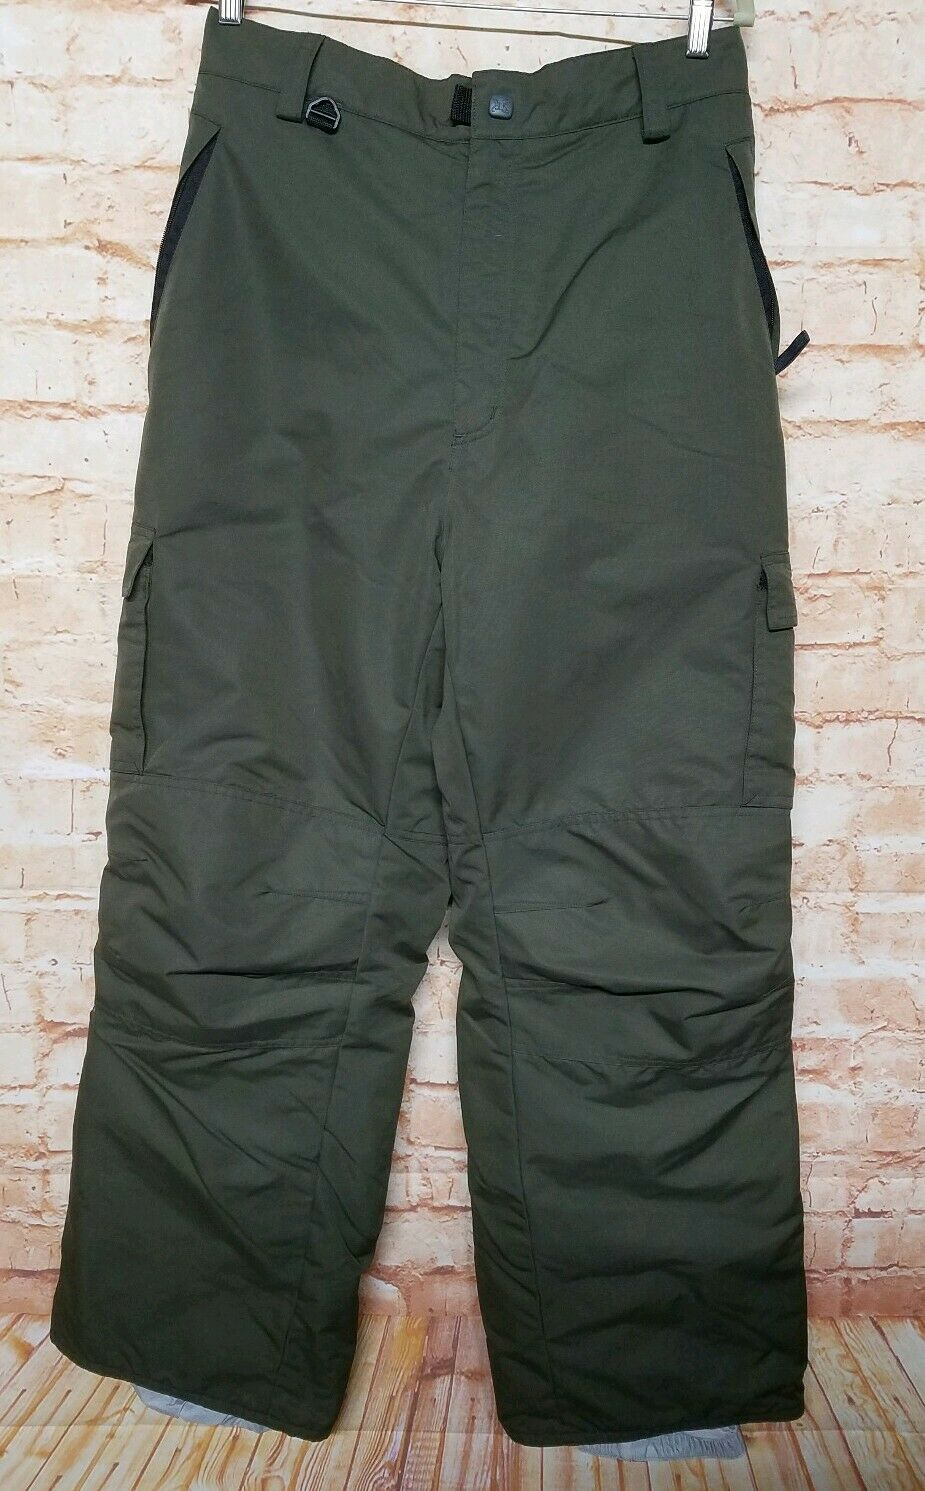 TURBINE Olive Green Nylon Men Size XL Winter Snow Ski-board Pant Waterproof 45